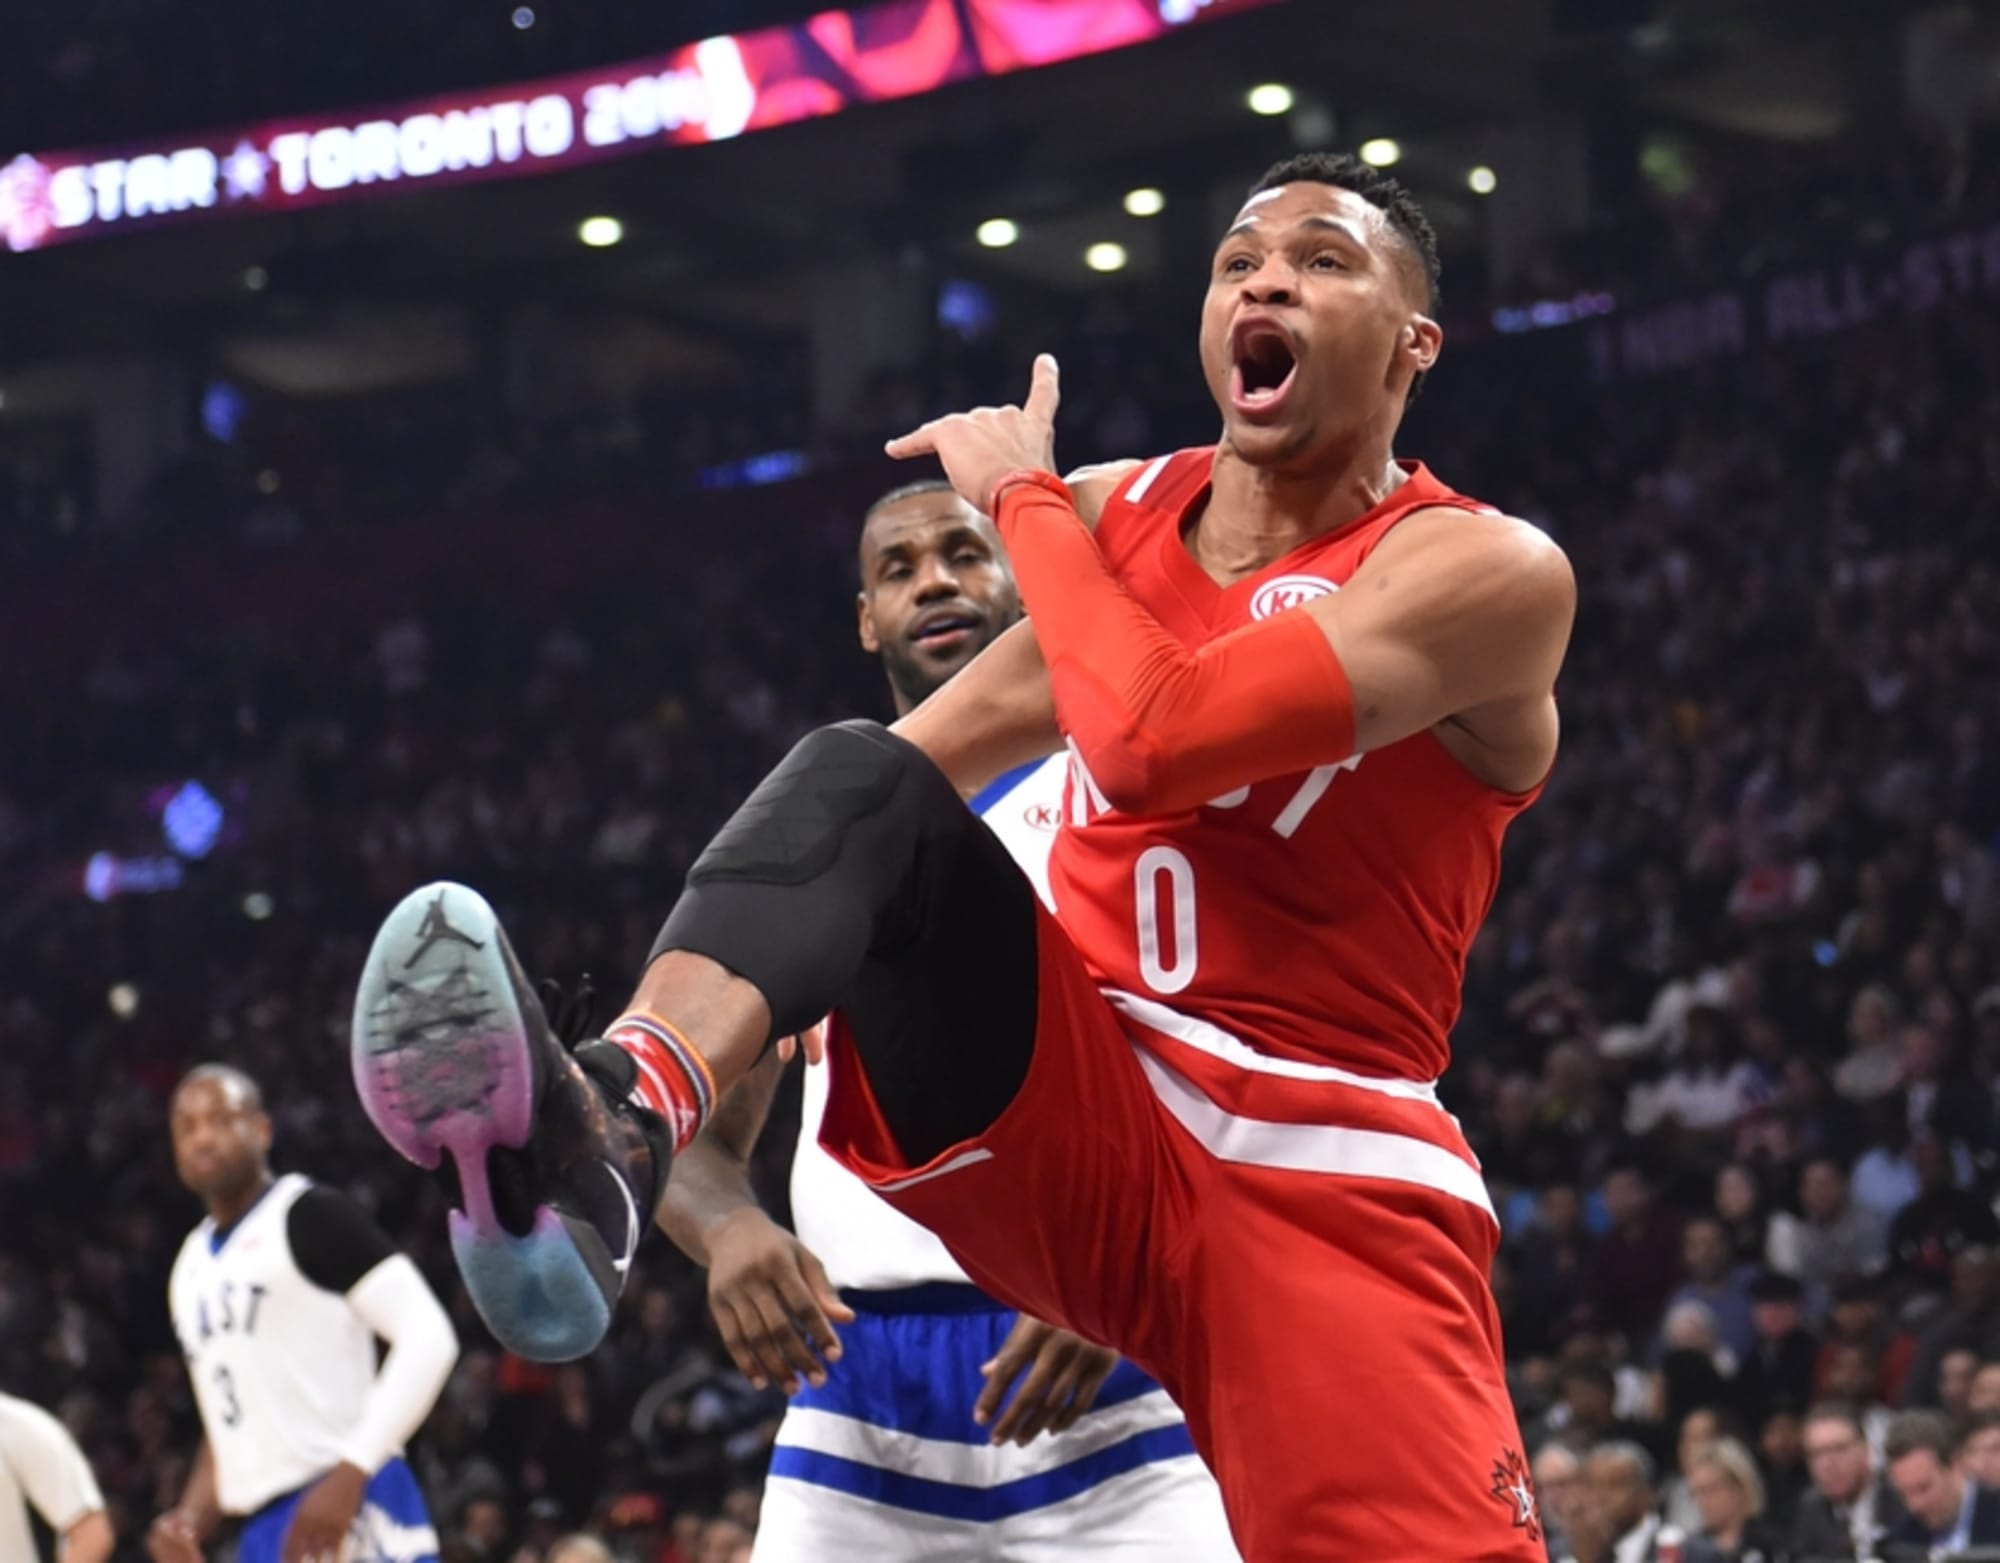 Nba All Star Game 2017 East And West Roster Predictions